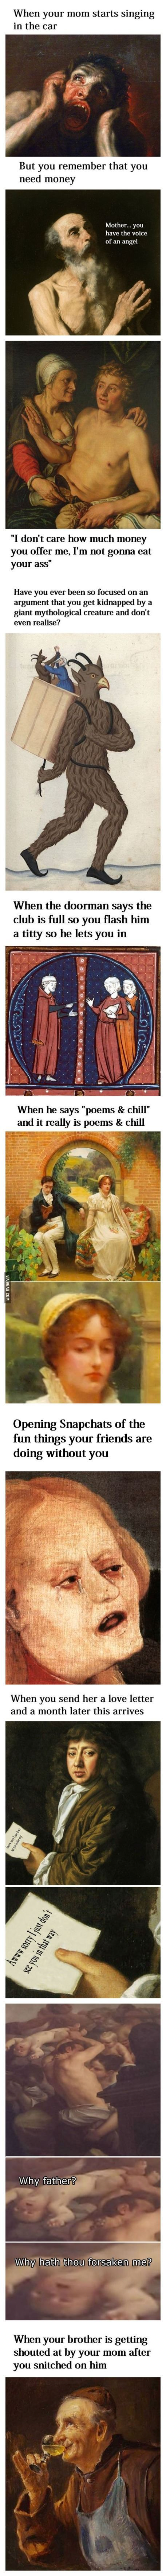 Classical Art Memes Latest (Part-7)